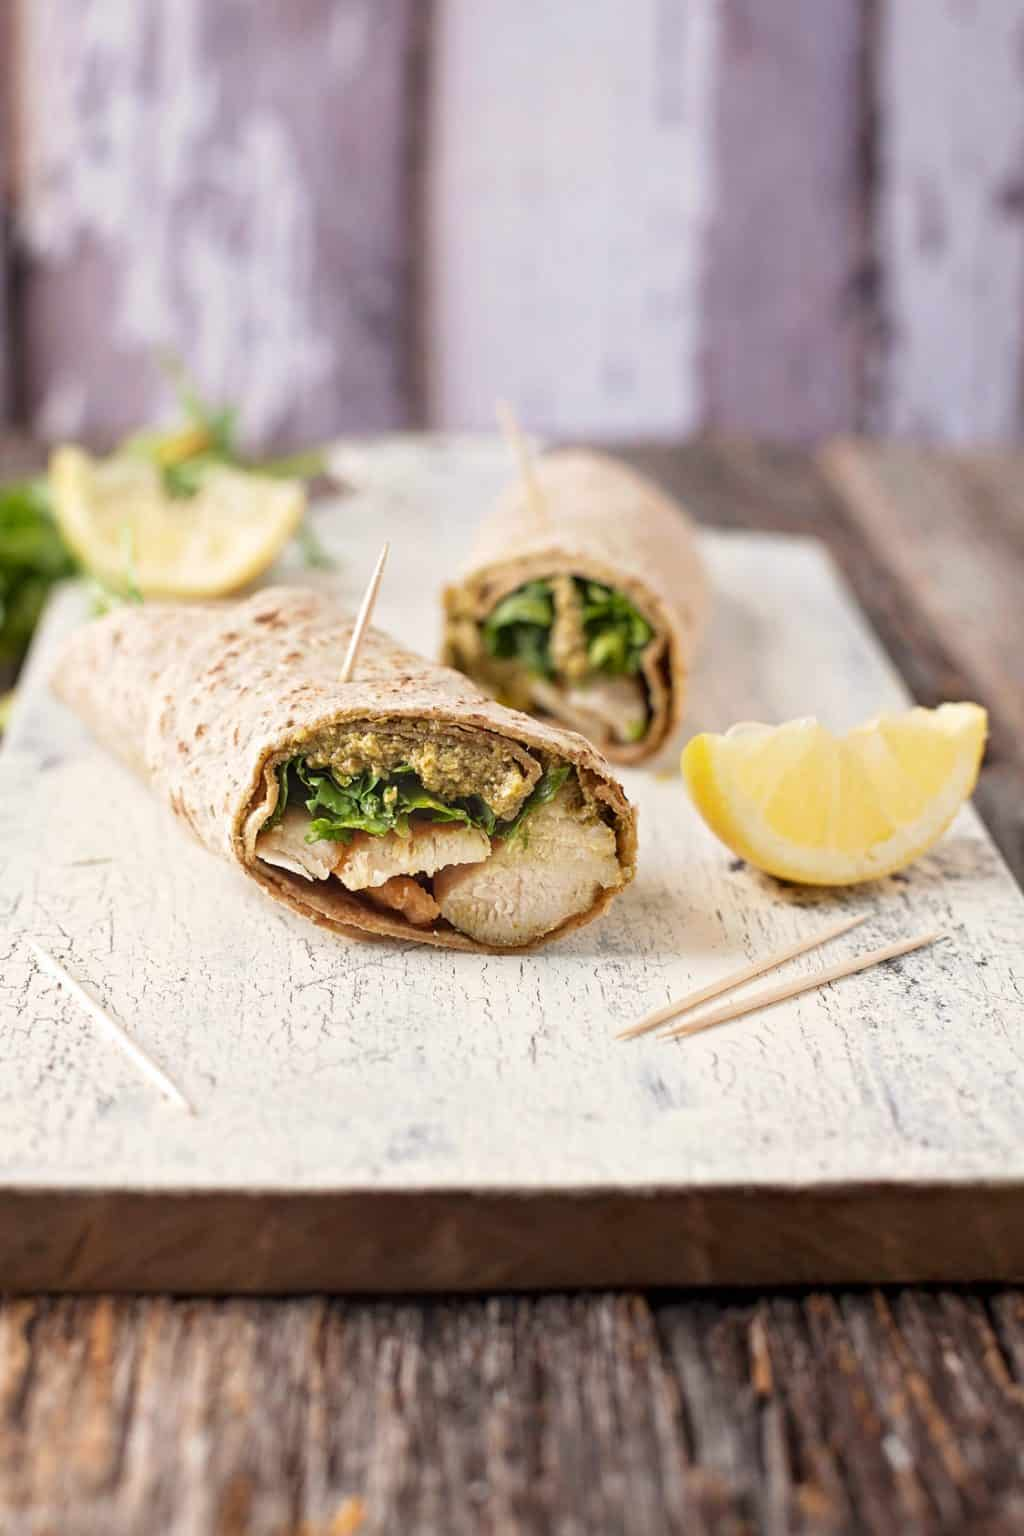 Light and healthy chicken pesto wraps are a fast, fresh lunch or dinner idea that's light on calories.